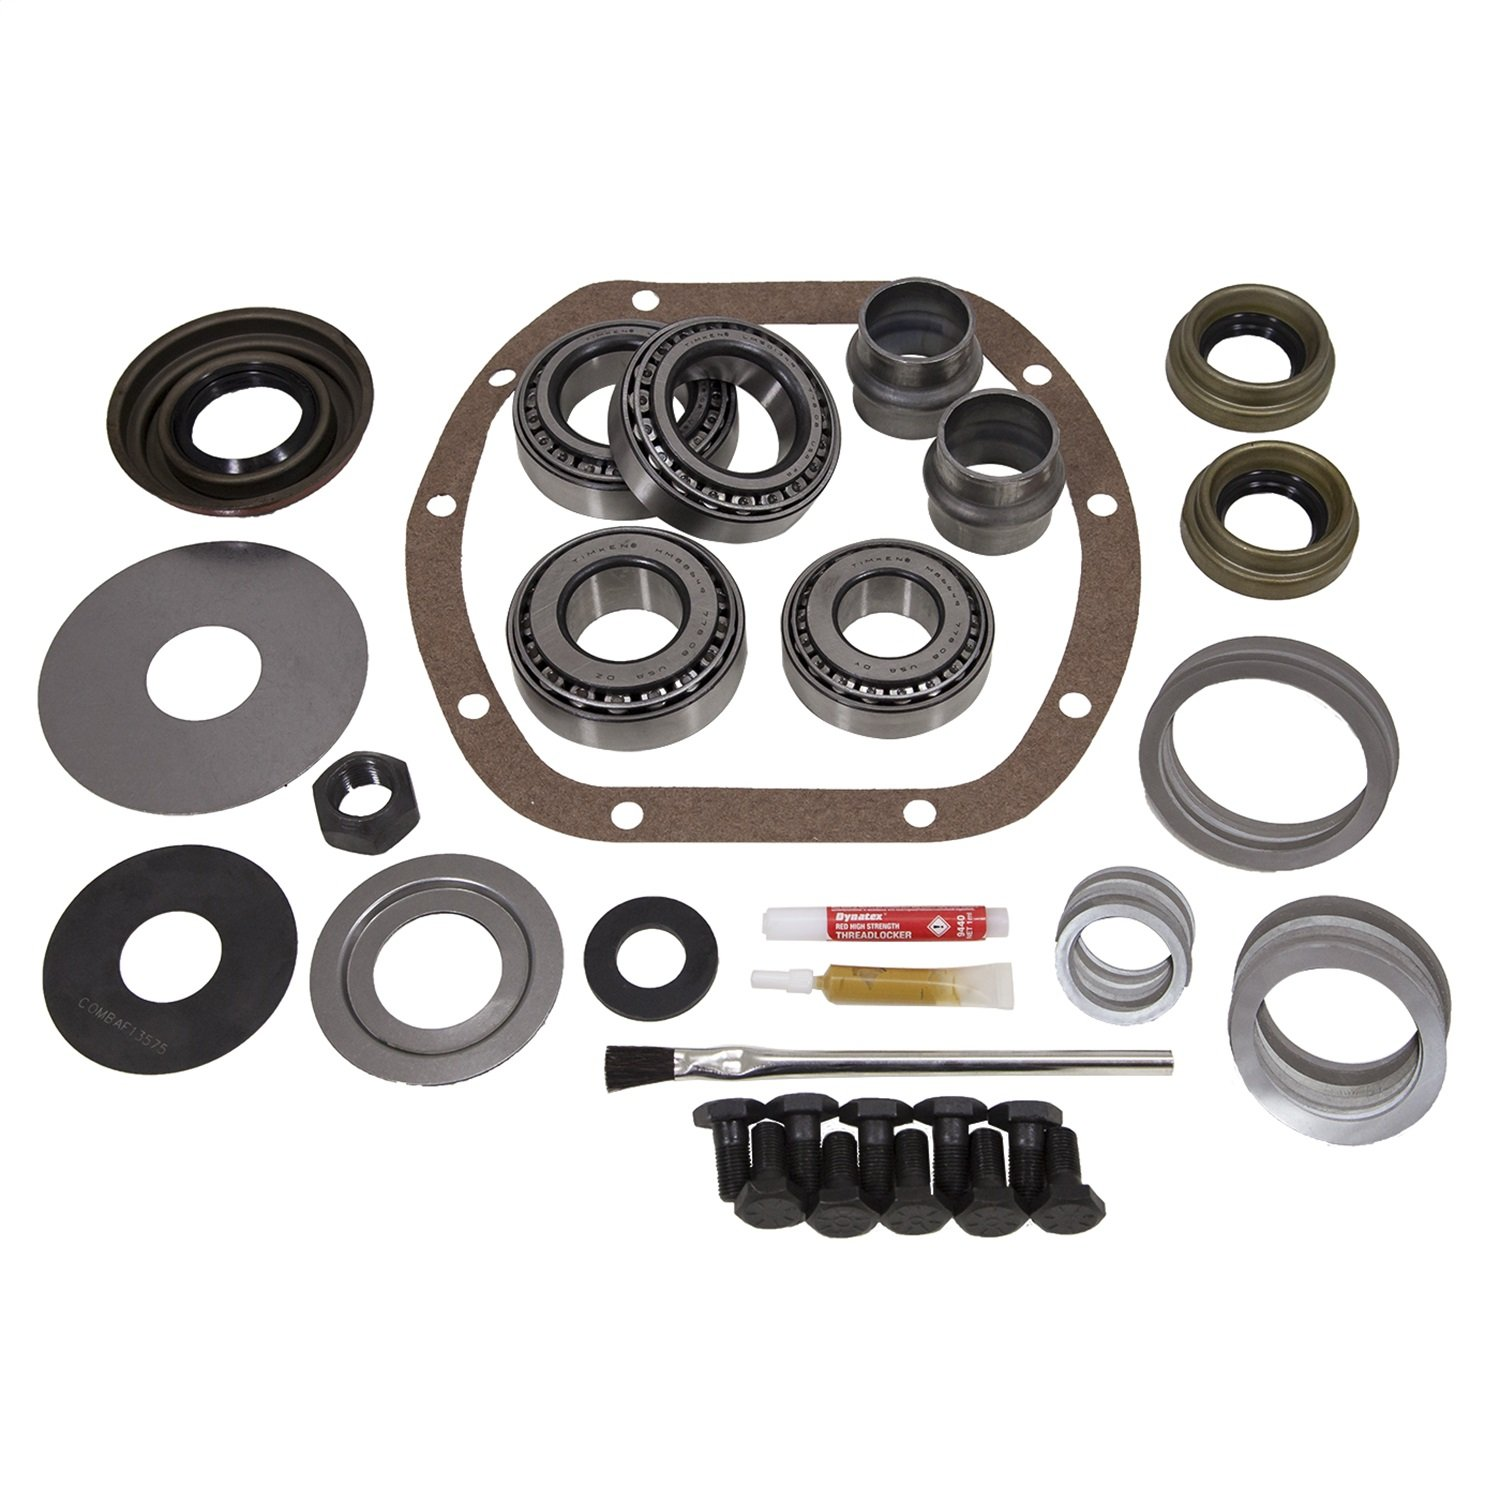 Yukon Gear & Axle (YK D30-TJ) Master Overhaul Kit for Dana 30 Axle